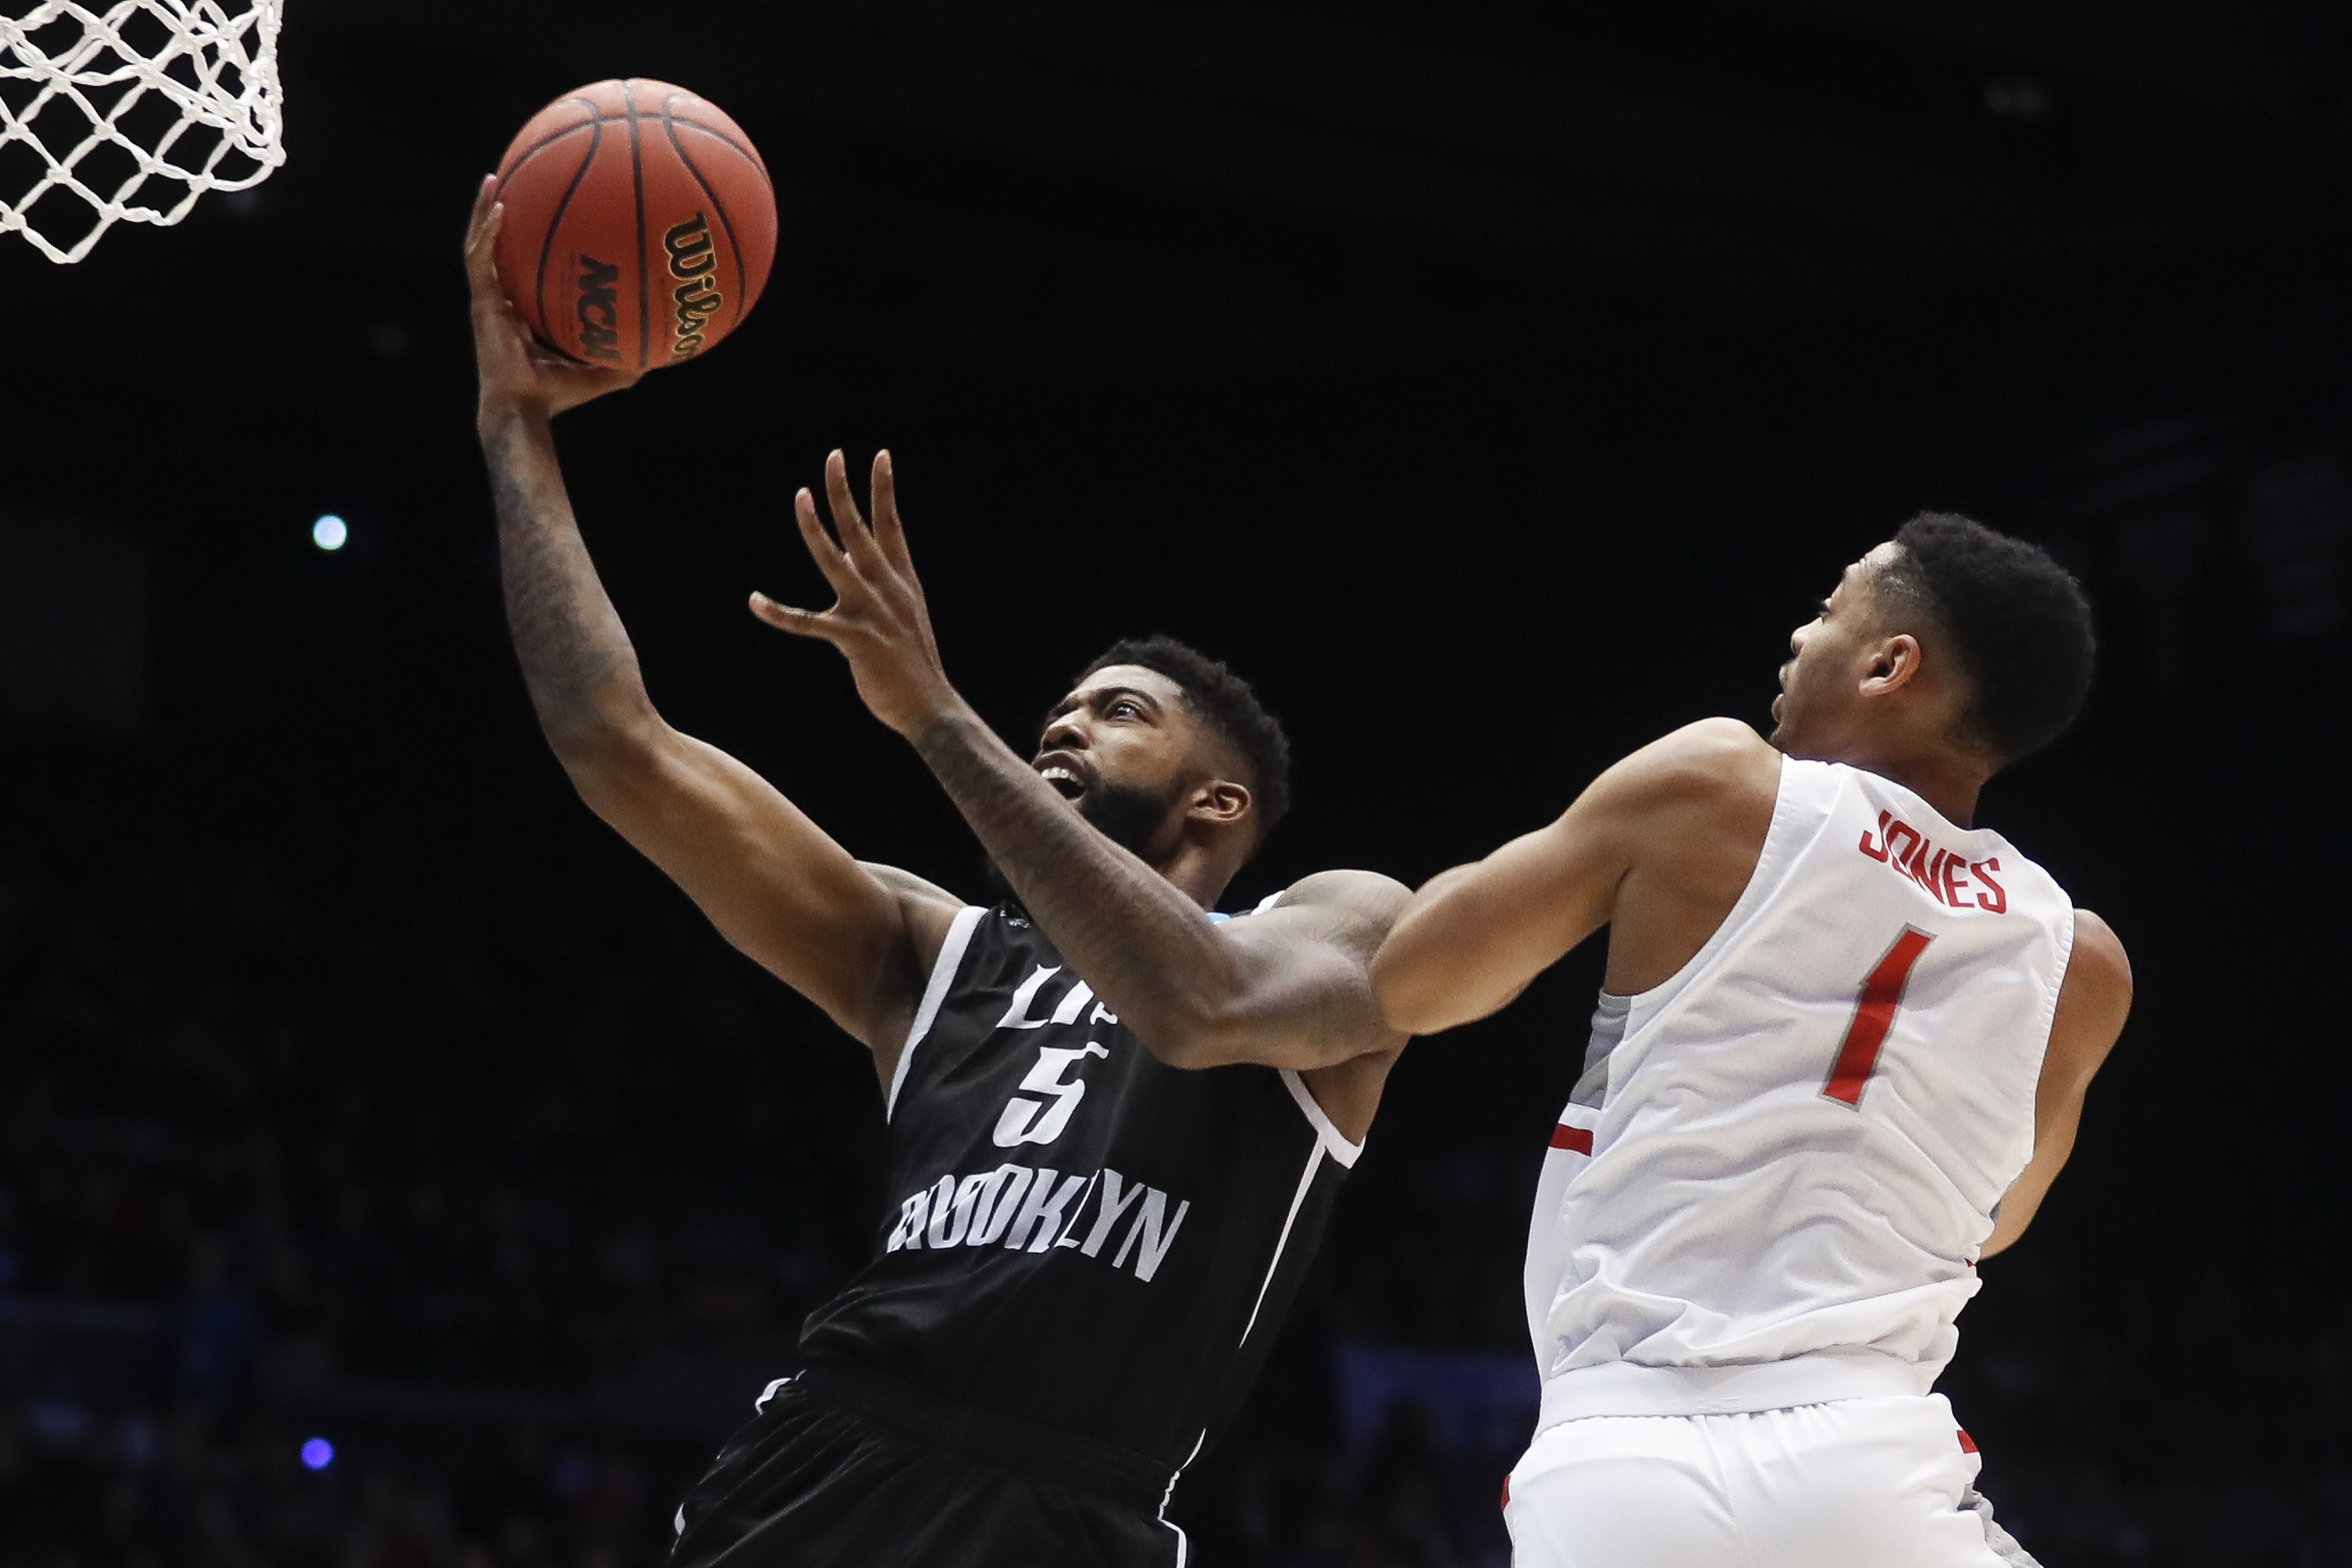 LIU Brooklyn's Zach Coleman (5) shoots against Radford's Carlik Jones (1) during the first half of a First Four game of the NCAA men's college basketball tournament, Tuesday, March 13, 2018, in Dayton, Ohio. (AP Photo/John Minchillo)